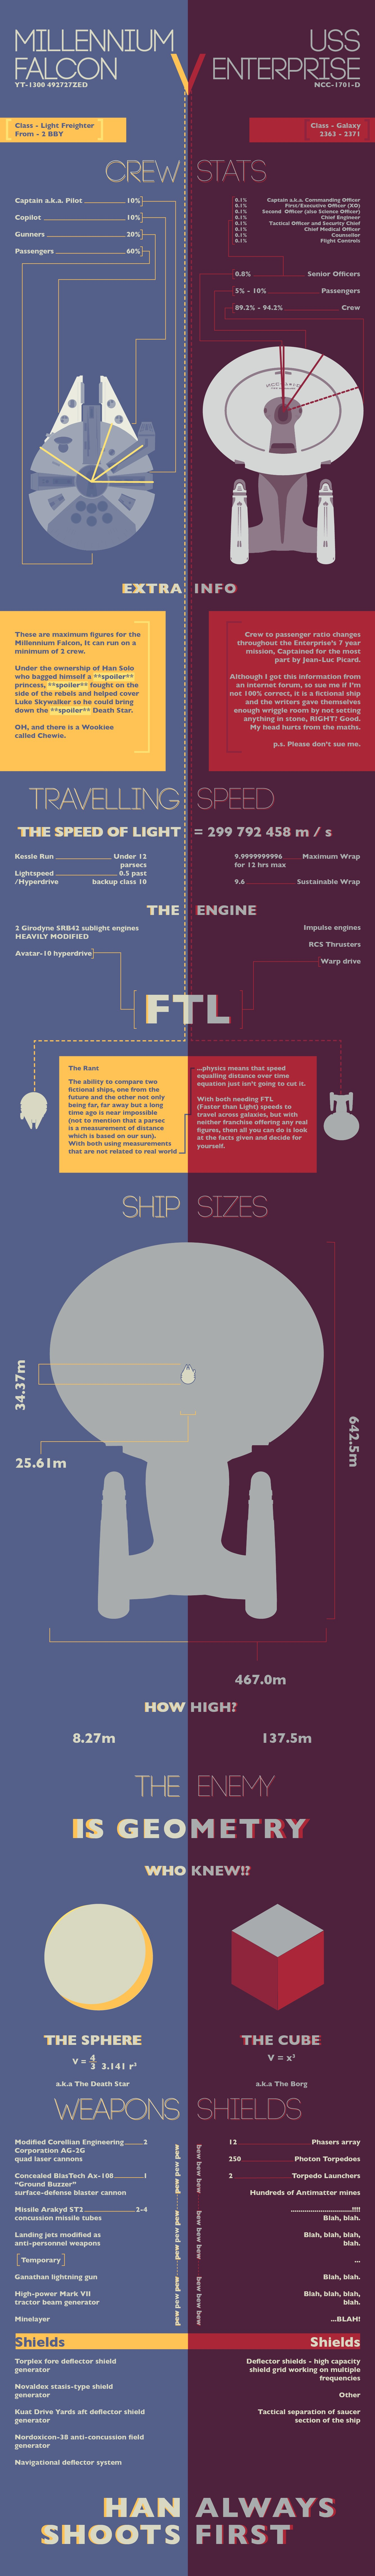 millenium_falcon_vs_uss_enterprise_infographic